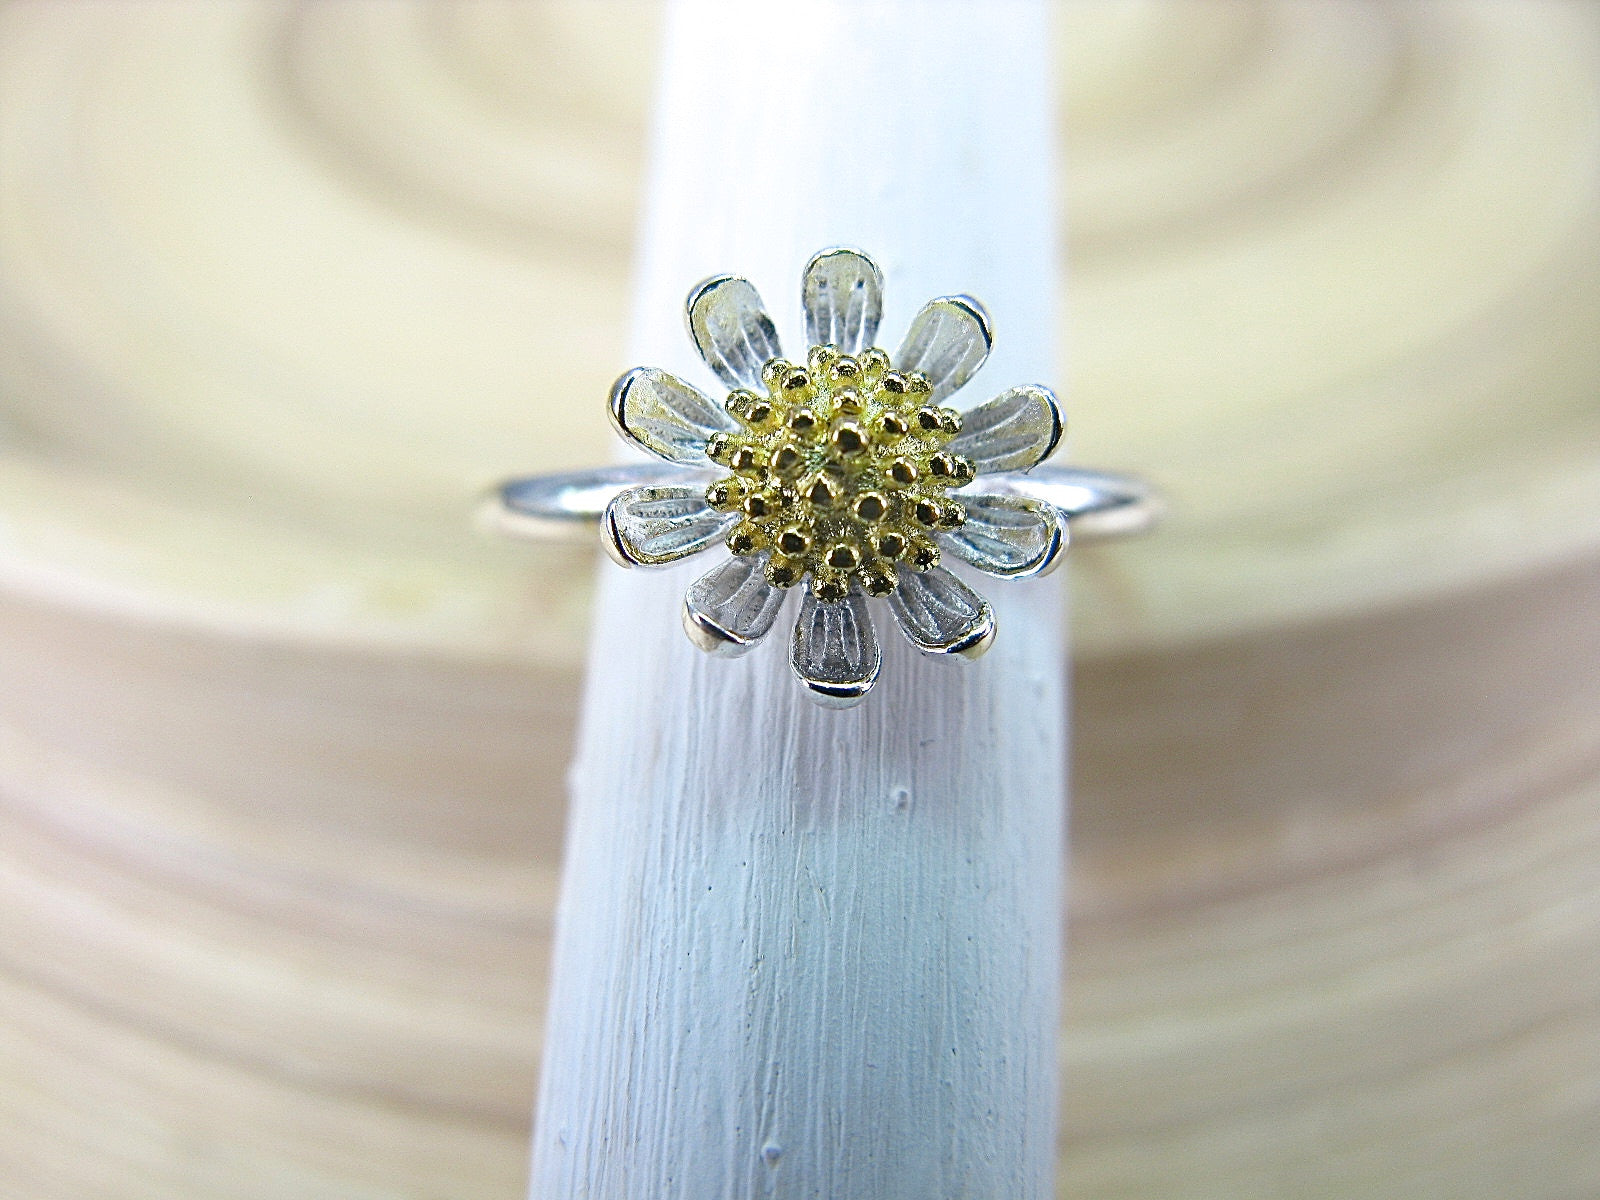 Sunflower Two Tone Gold Plated 925 Sterling Silver Ring